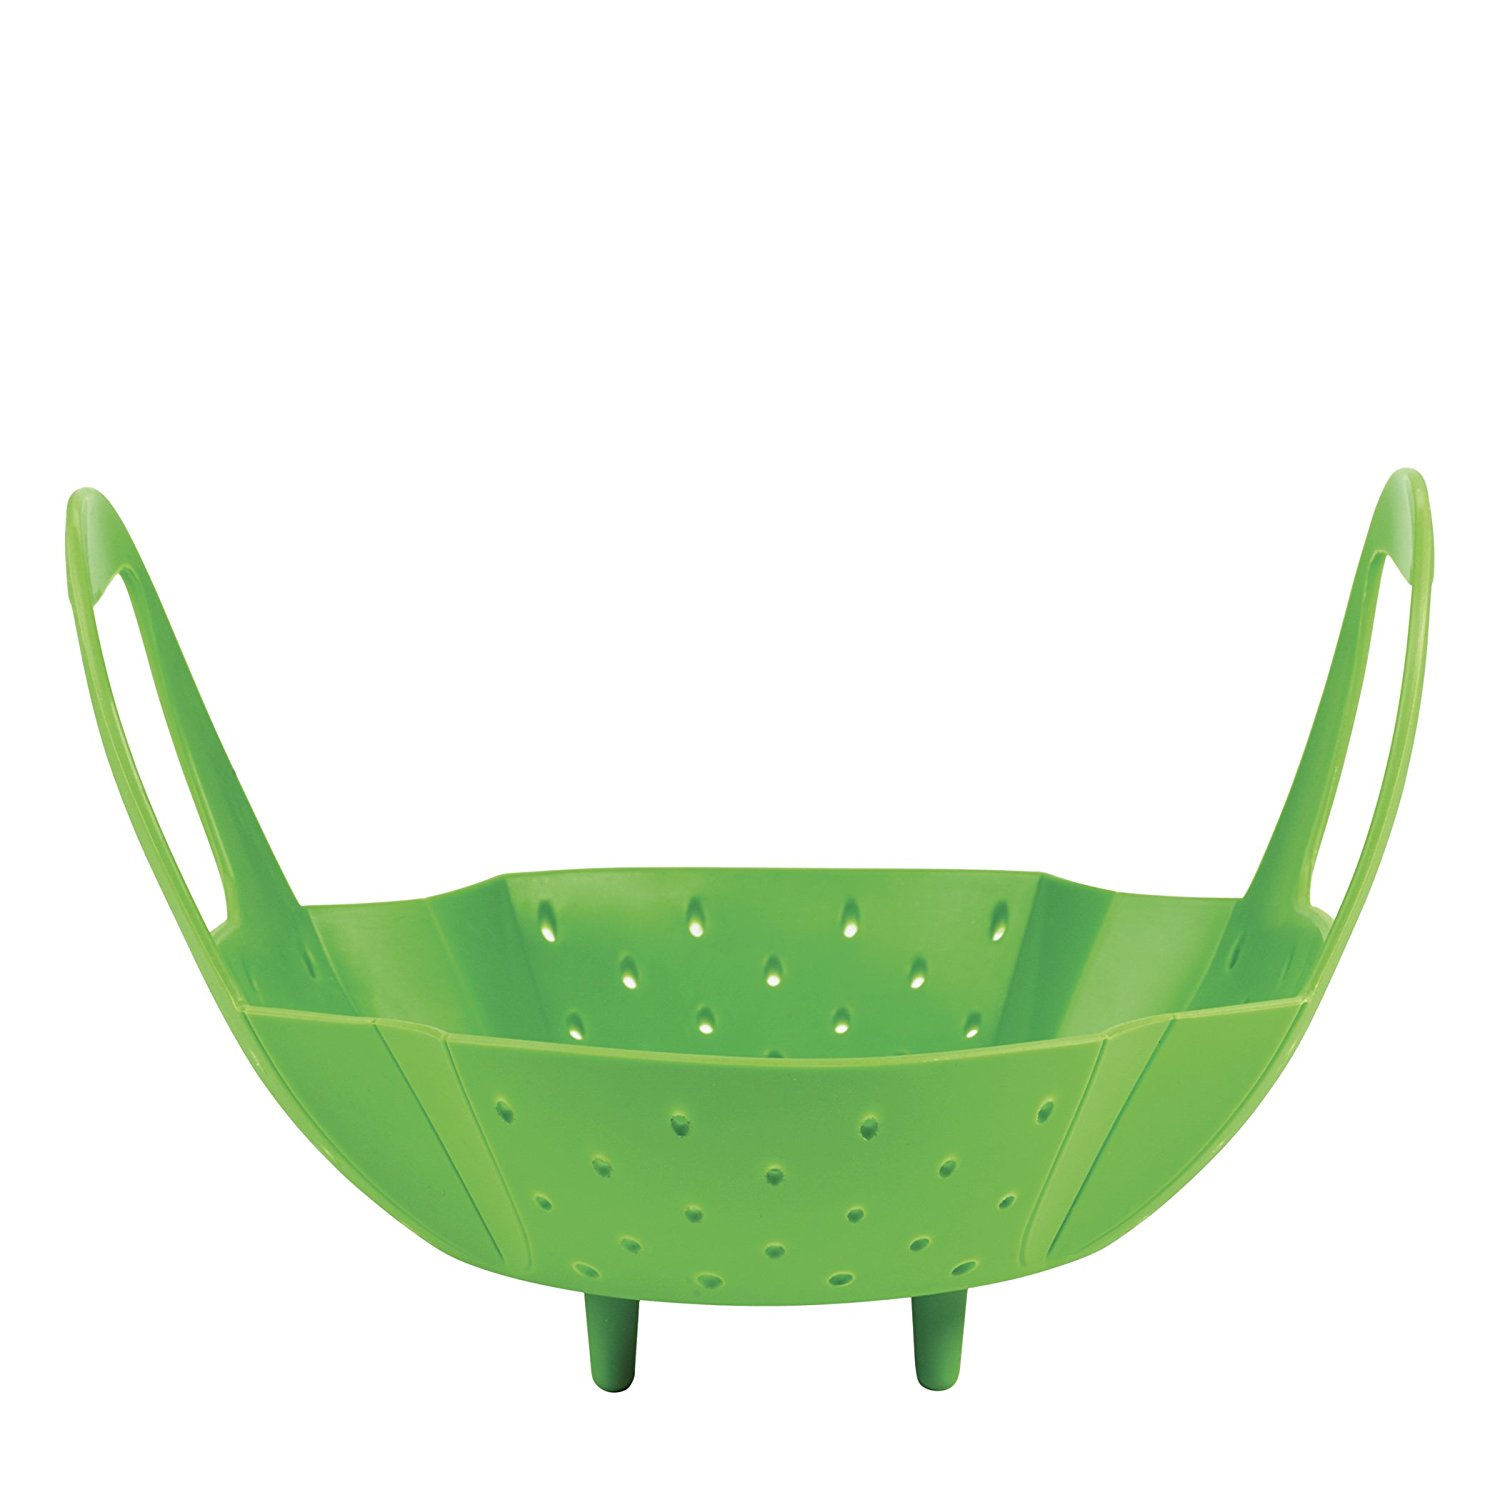 2018 OXO Good Grips Green Silicone Steamer Basket